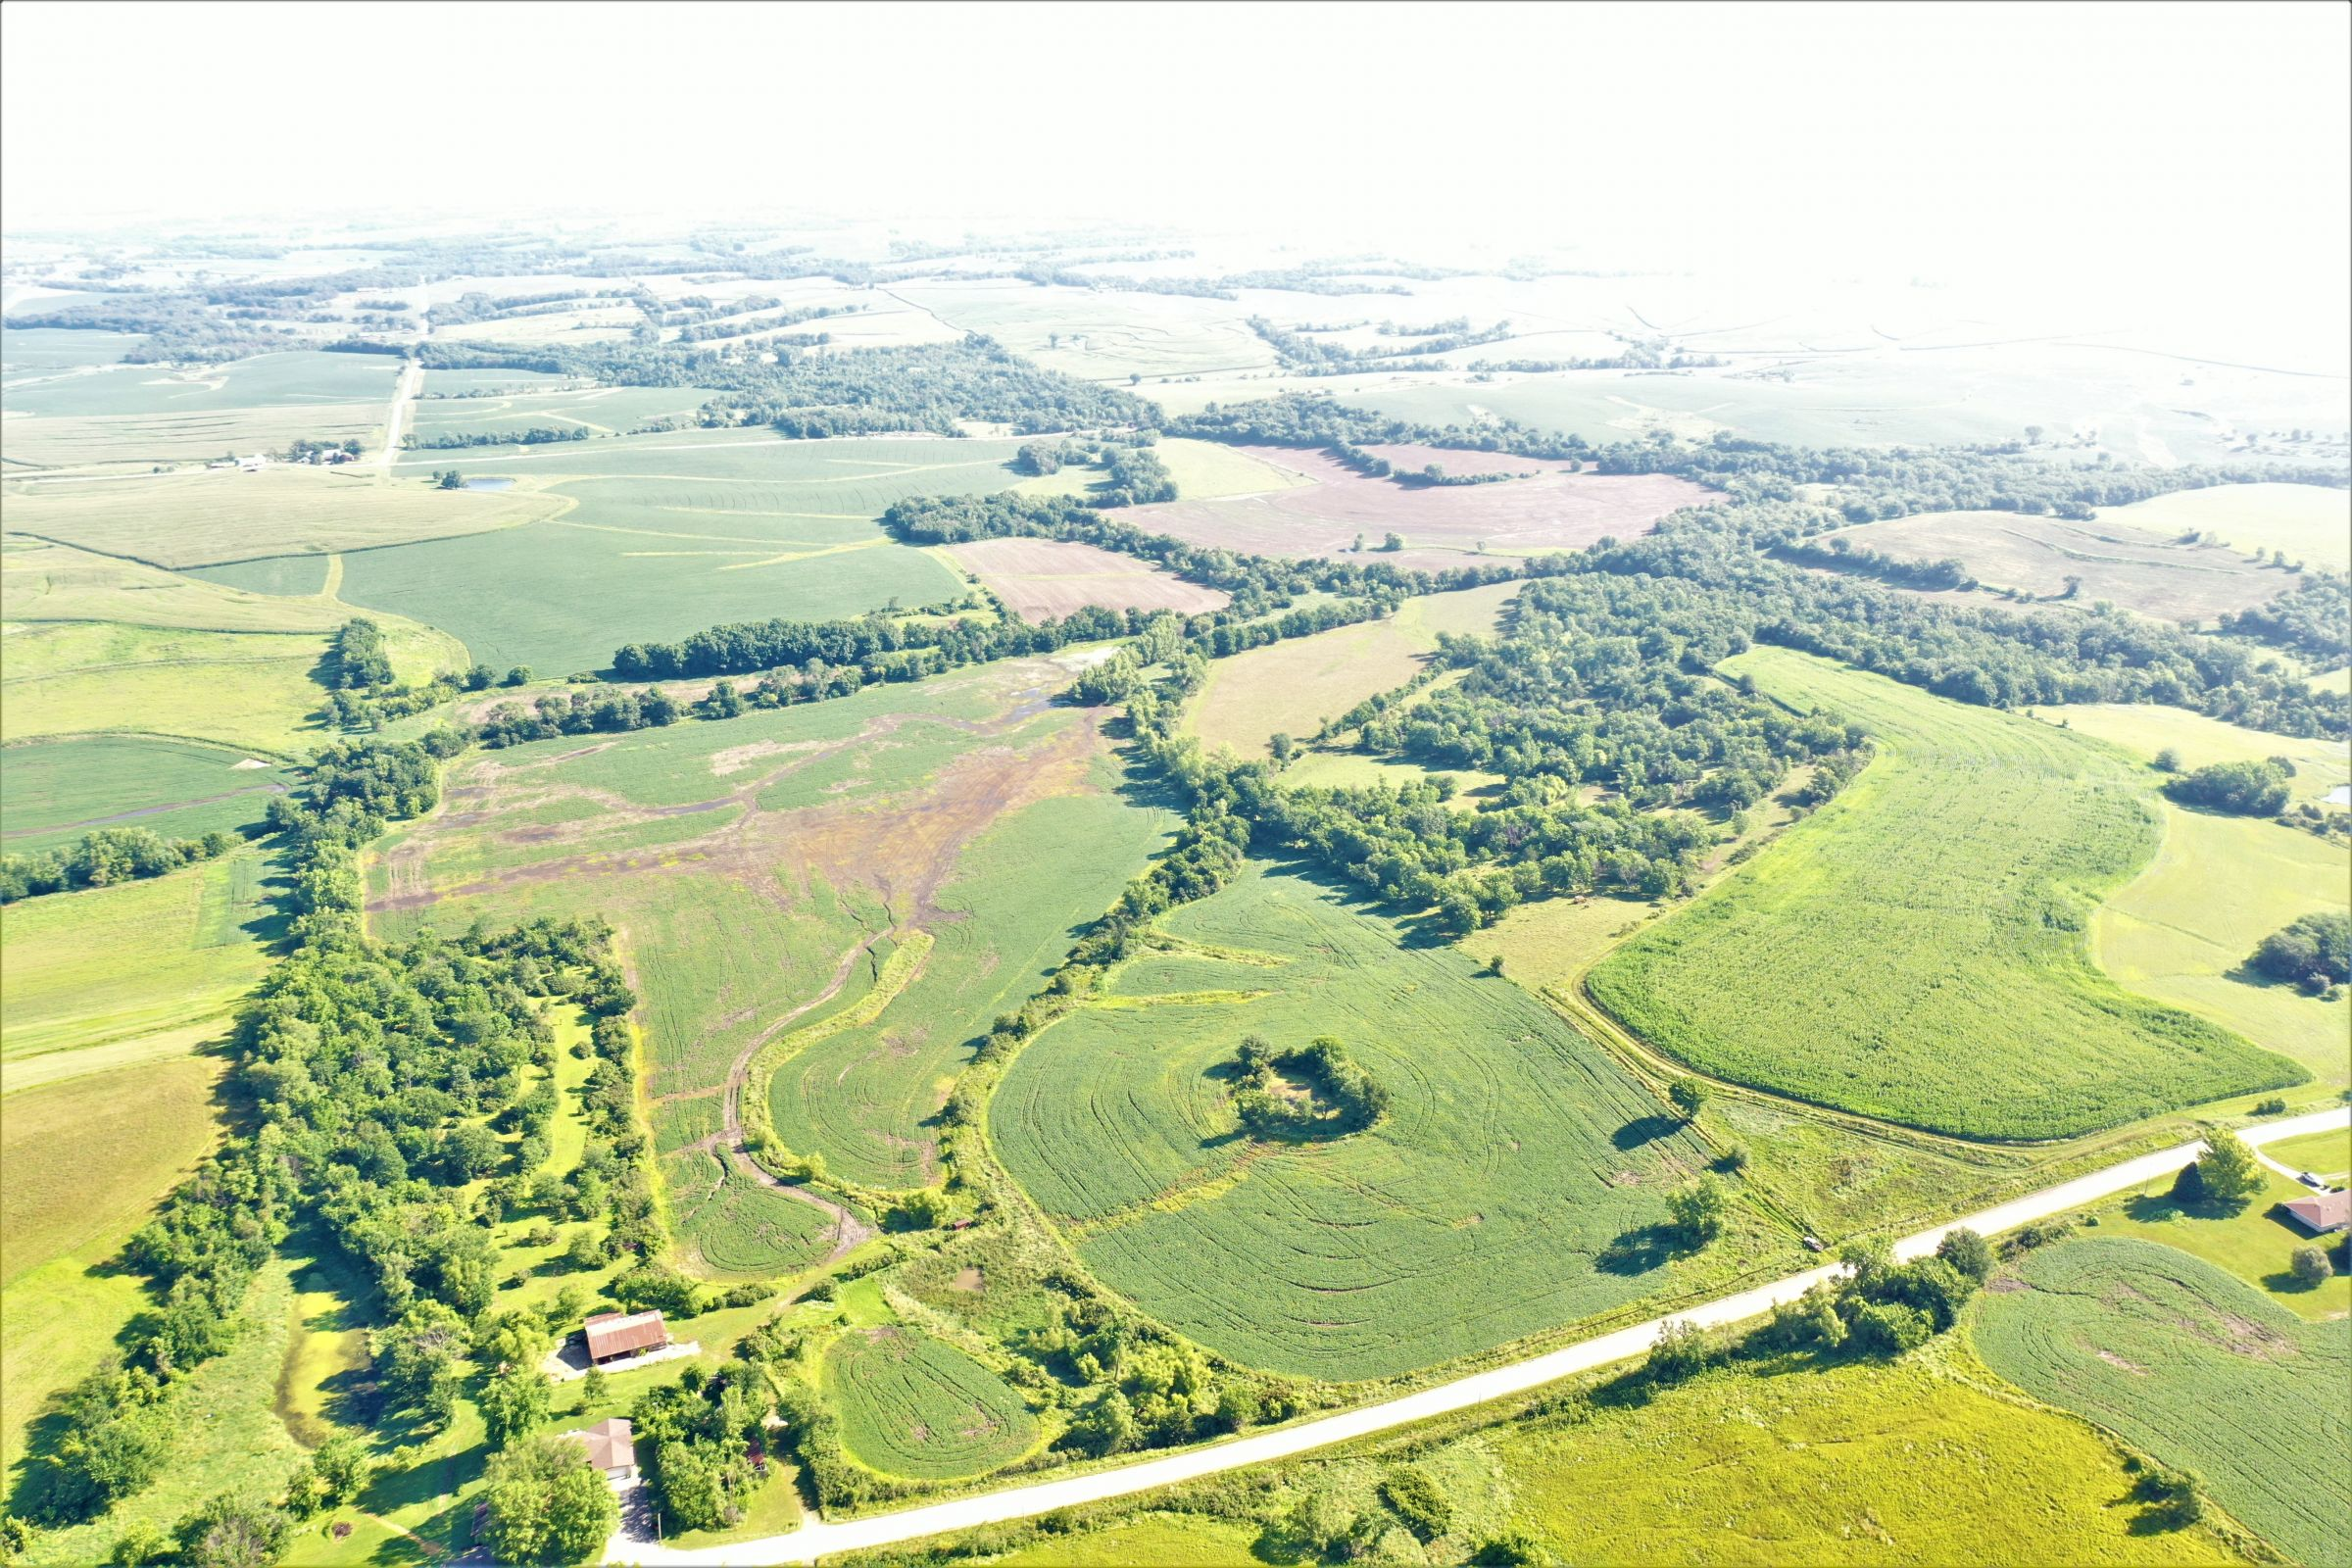 land-marion-county-iowa-163-acres-listing-number-15077-8-2020-07-17-171950.jpg